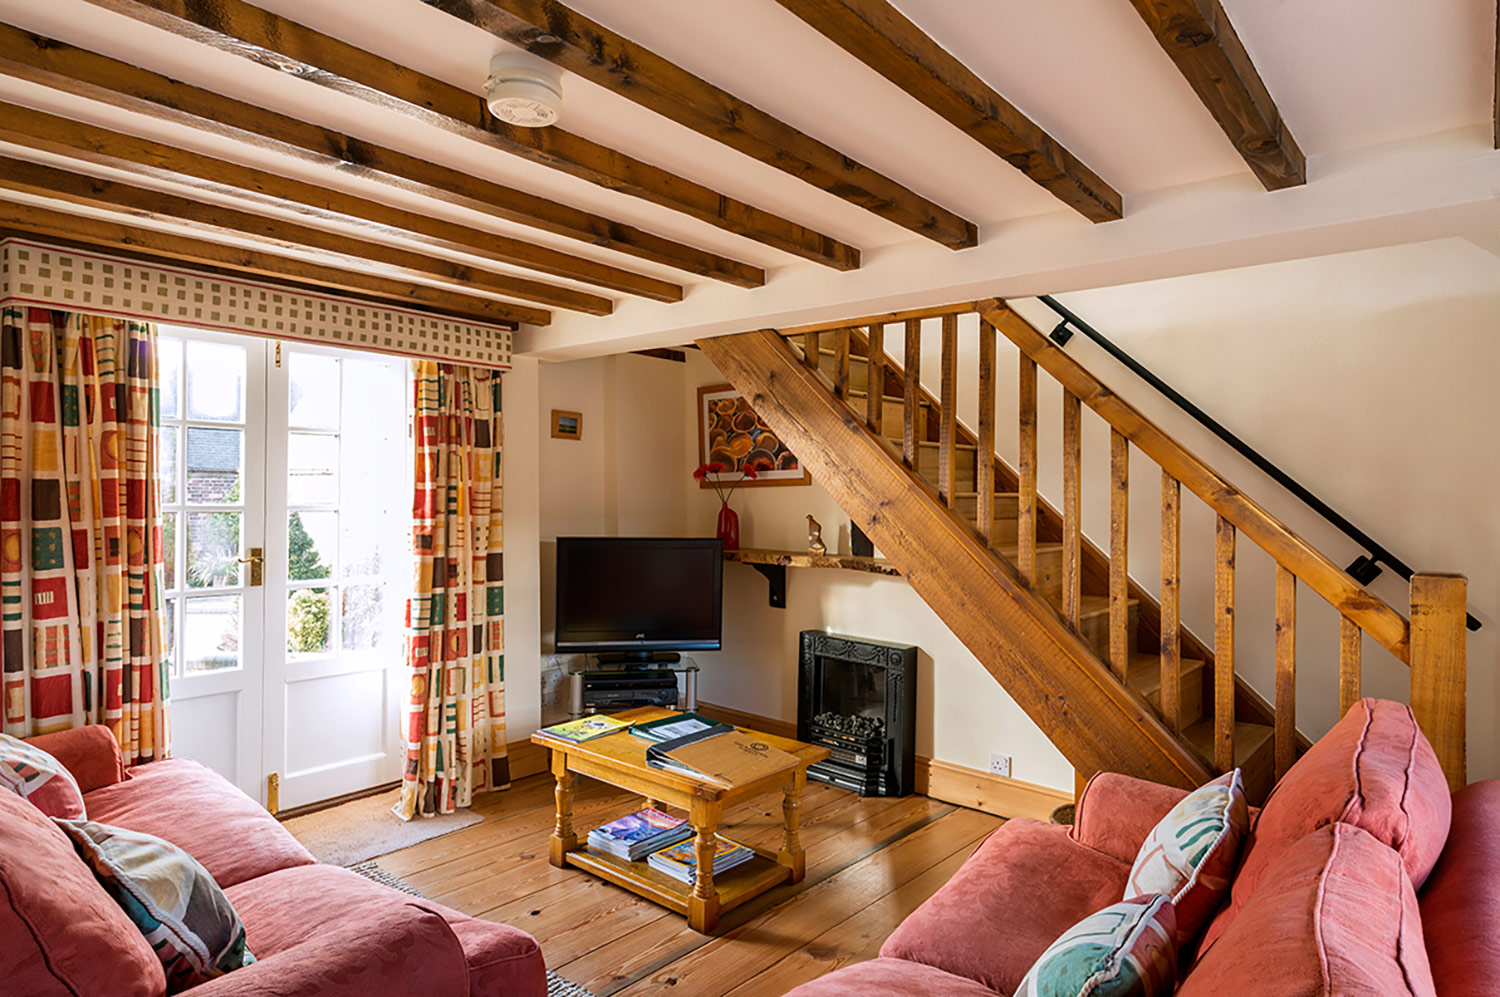 Cosy holiday cottage perfect for romantic weekends away | Upper Rectory Farm Cottages